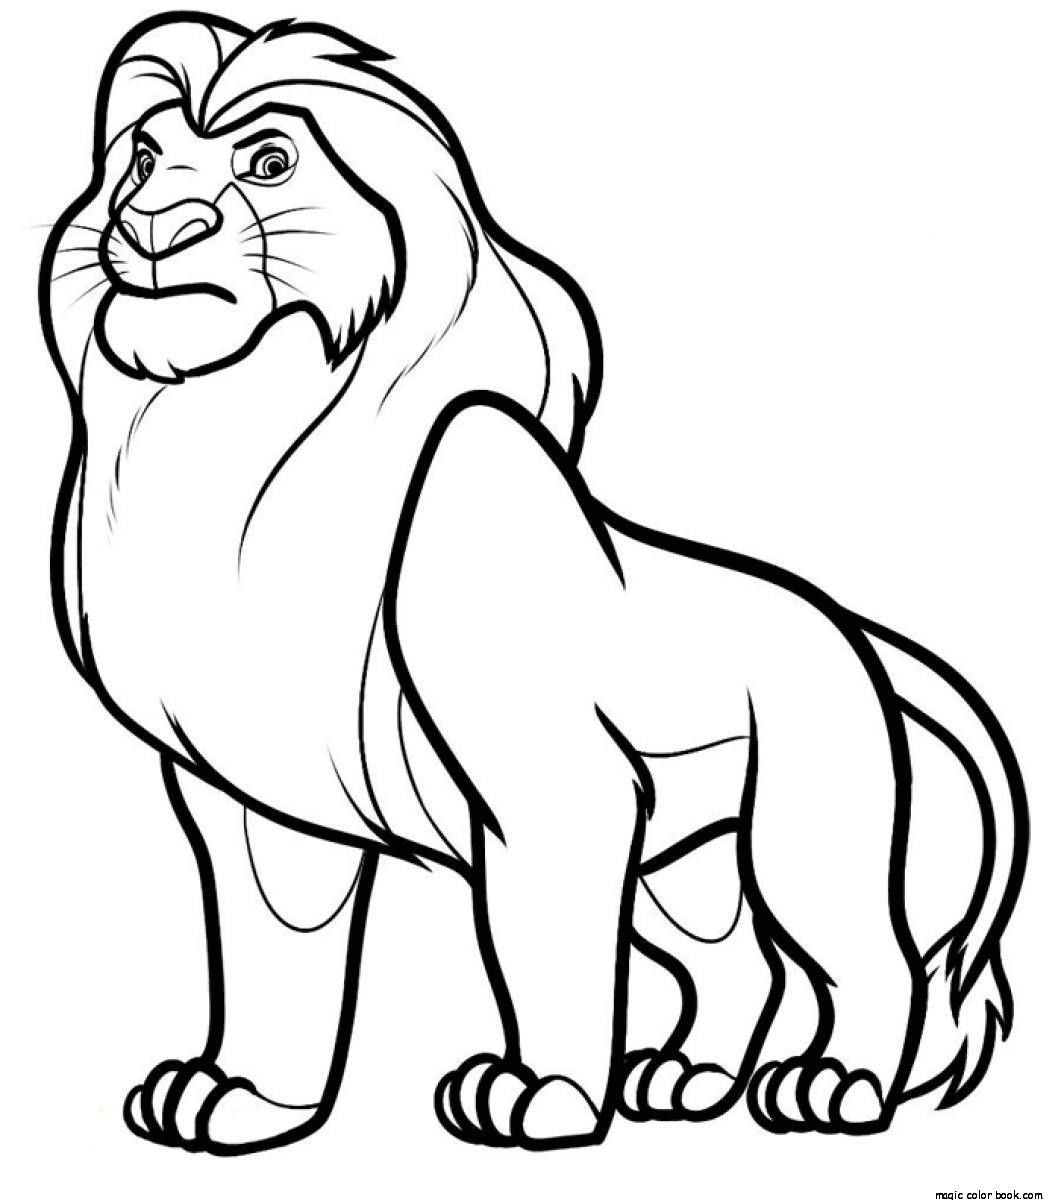 Mufasa Disney The Lion King Coloring Pages Online Free - Coloring Home